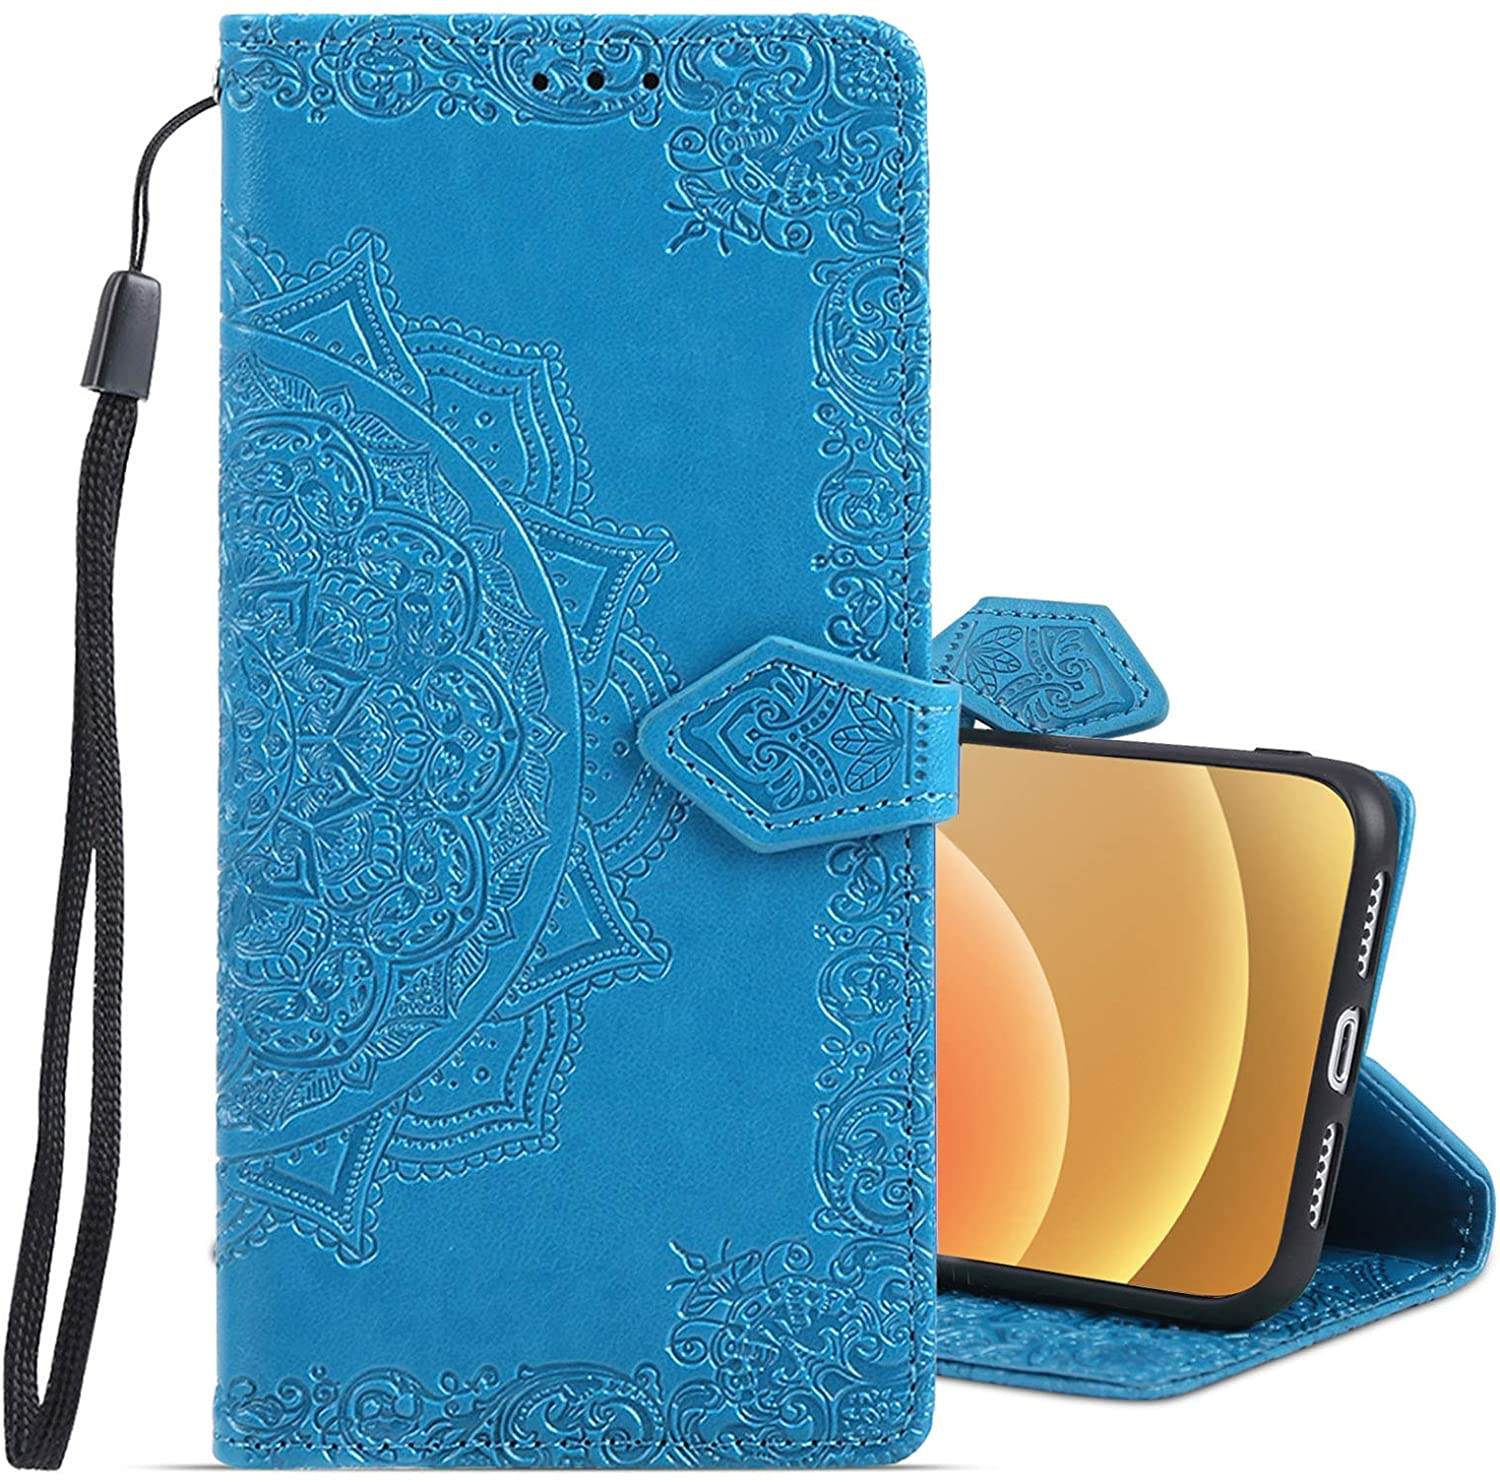 Bsnowmela Wallet Case for iPhone 12 Pro Max 5G Card Holder Case PU Leather Flip Folio Cover Kickstand Lanyard Embossed Flower Shockproof Slim Case Cover for iPhone 12 Pro Max 6.7 inch Blue